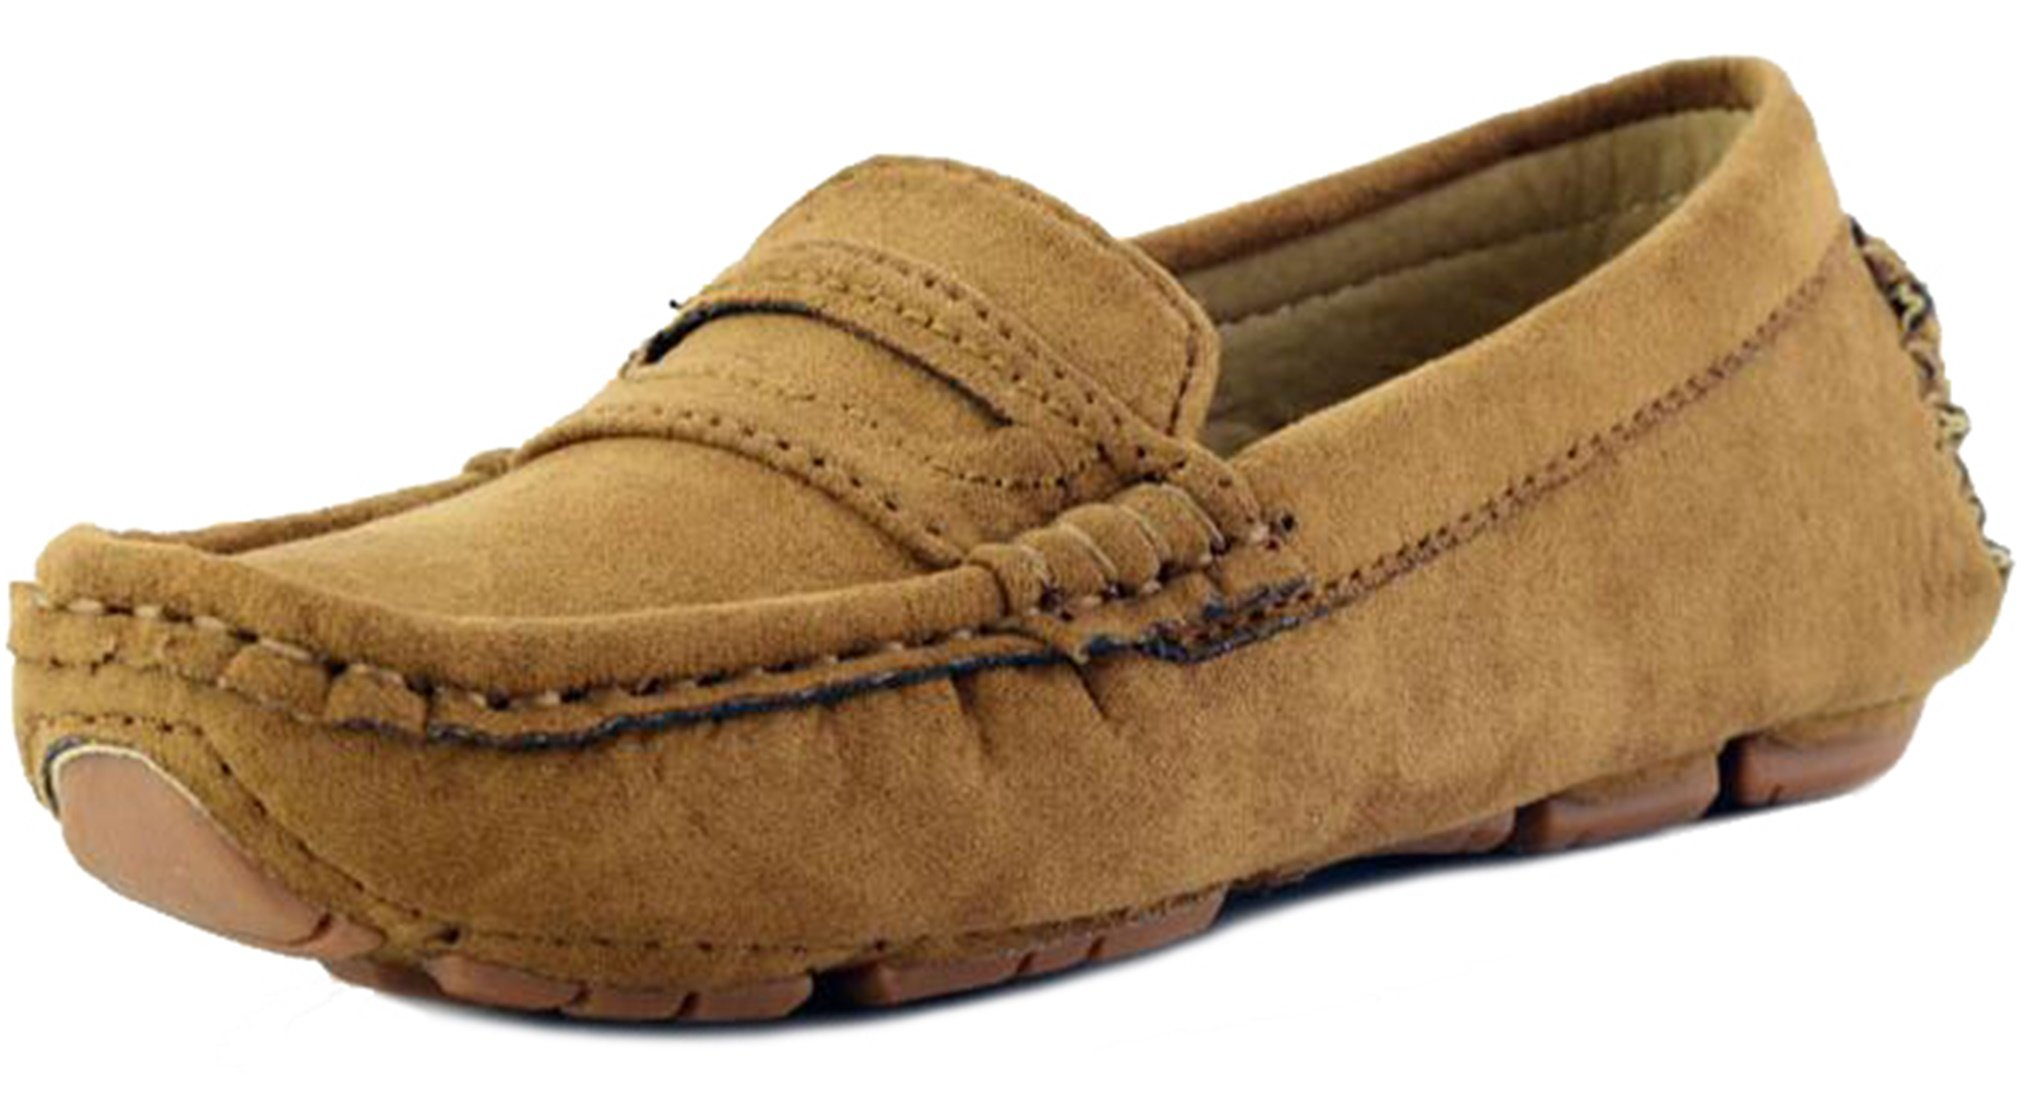 PPXID Girl's Boy's Suede Slip-on Loafers Shoes(Toddler/Little Kid/Big Kid)-Brown 9 US Size